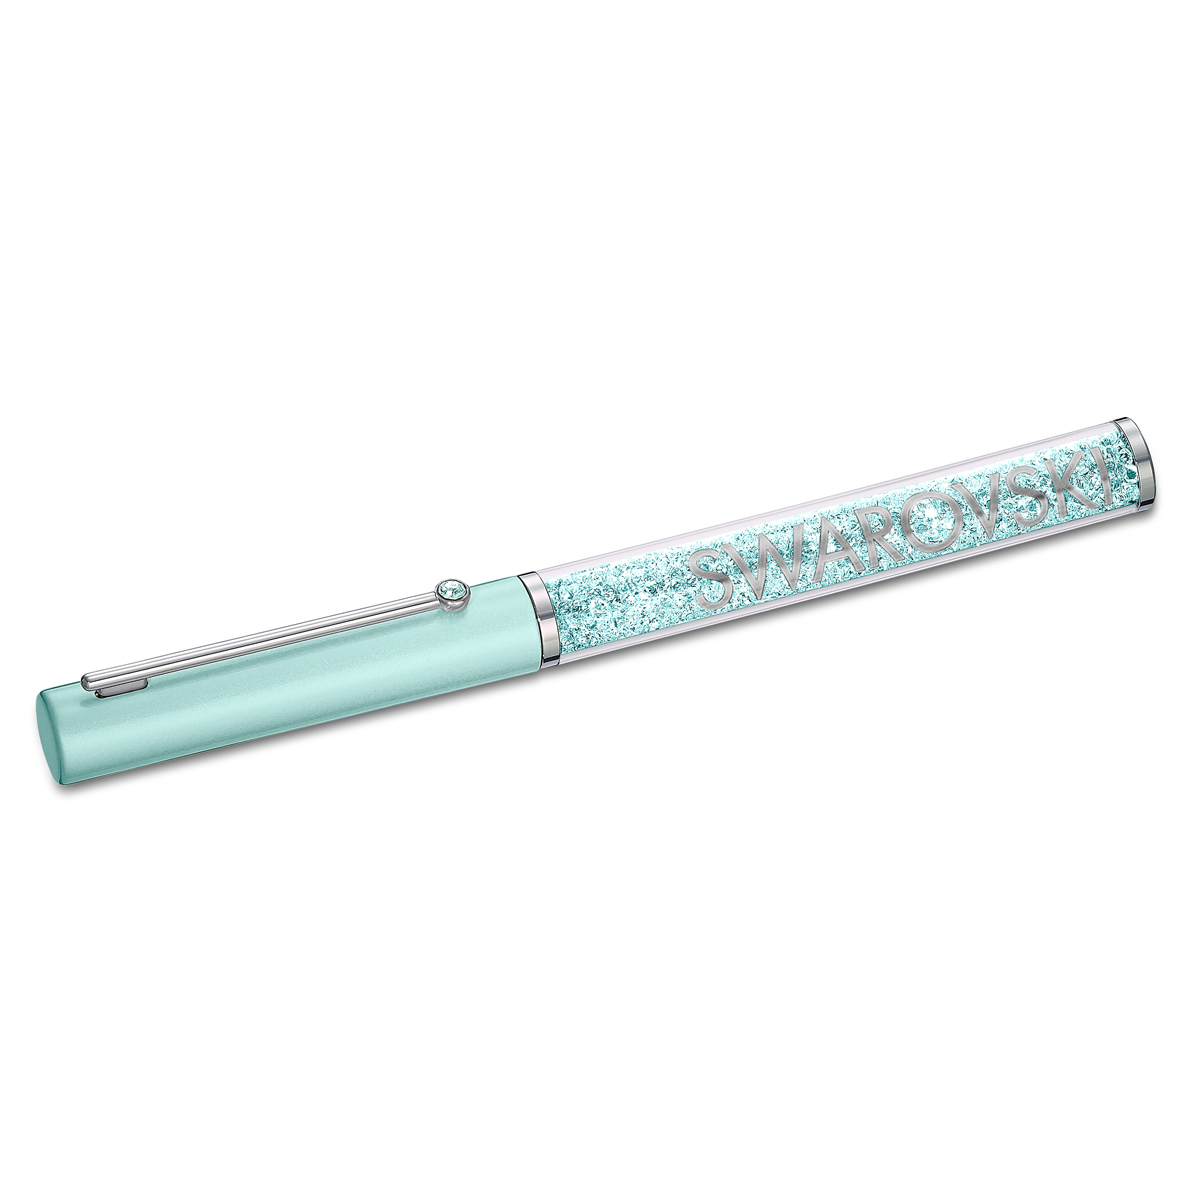 Swarovski Crystalline Gloss Ballpoint Pen, Green, Chrome Plated